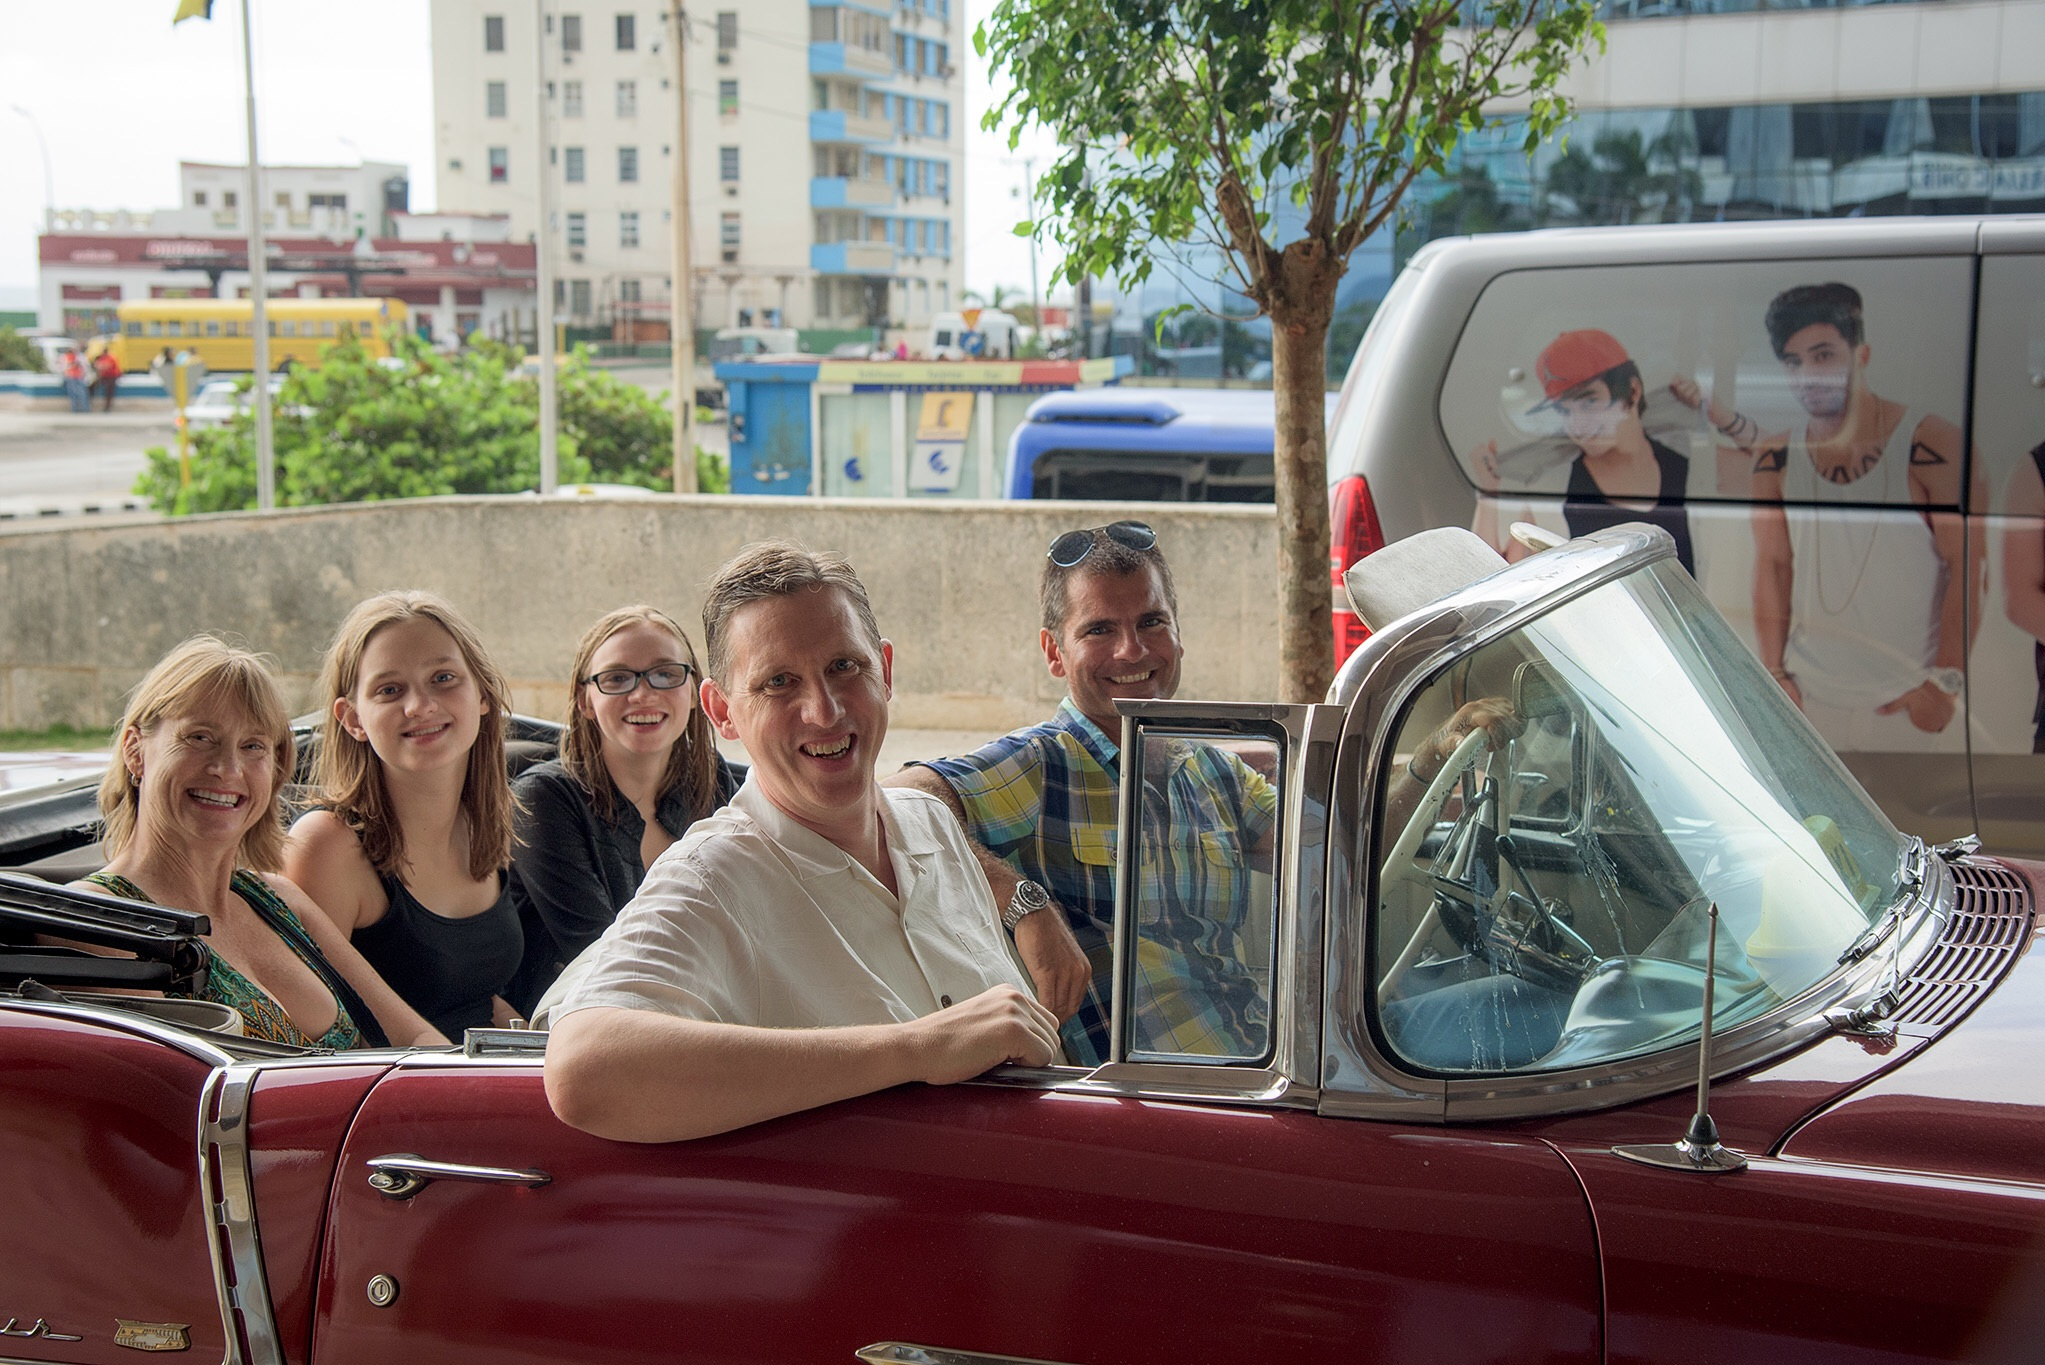 The best preserved cars are government owned and operate as tourist taxis. A ride in a '57 Chevy Belair convertible costs about 1/3 to 1/2 more than a standard taxi, but is a bucket list experience for most visitors from the USA. (Photo by Alfredo Insight Cuba)